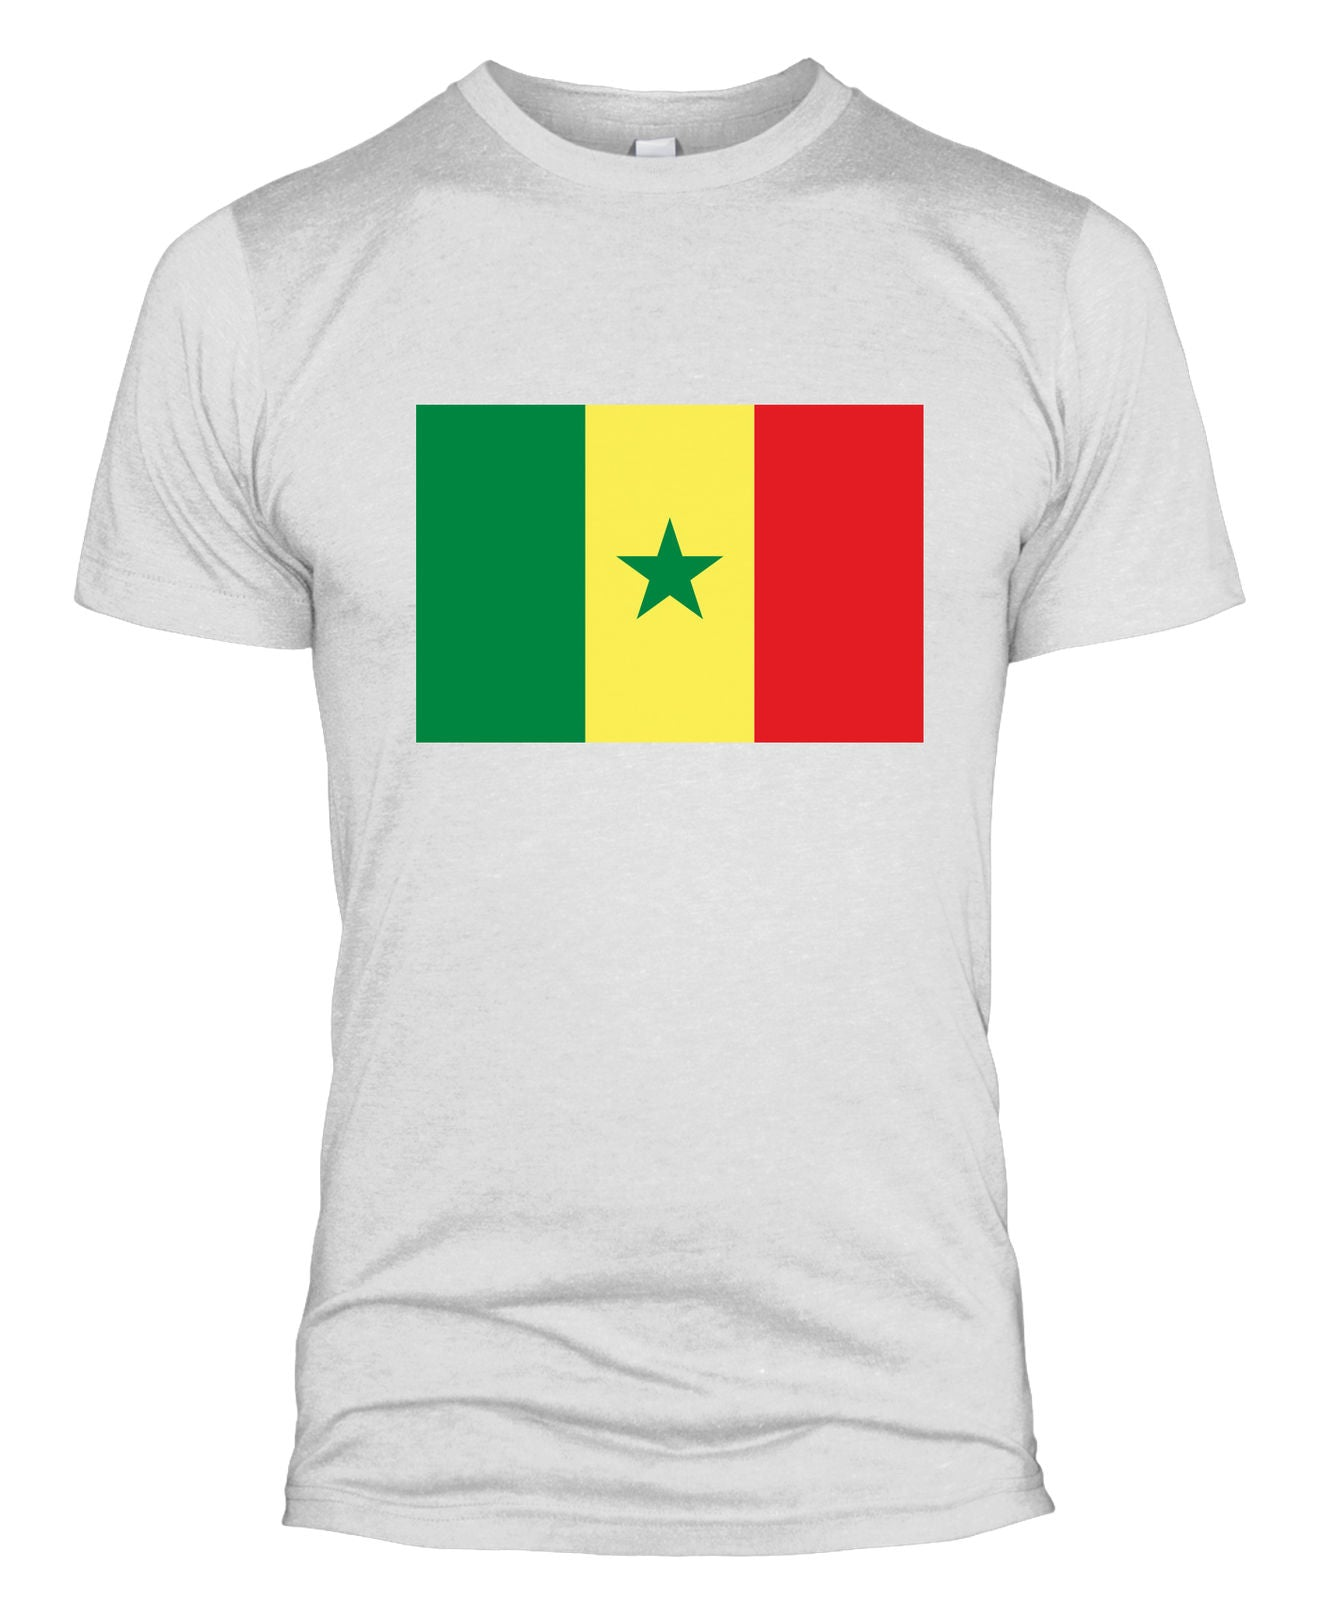 new arrivals 75d41 98fa6 Senegal Flag T Shirt Country National Football Team Kit World Cup Men Women  L254 - The Clothing Shed